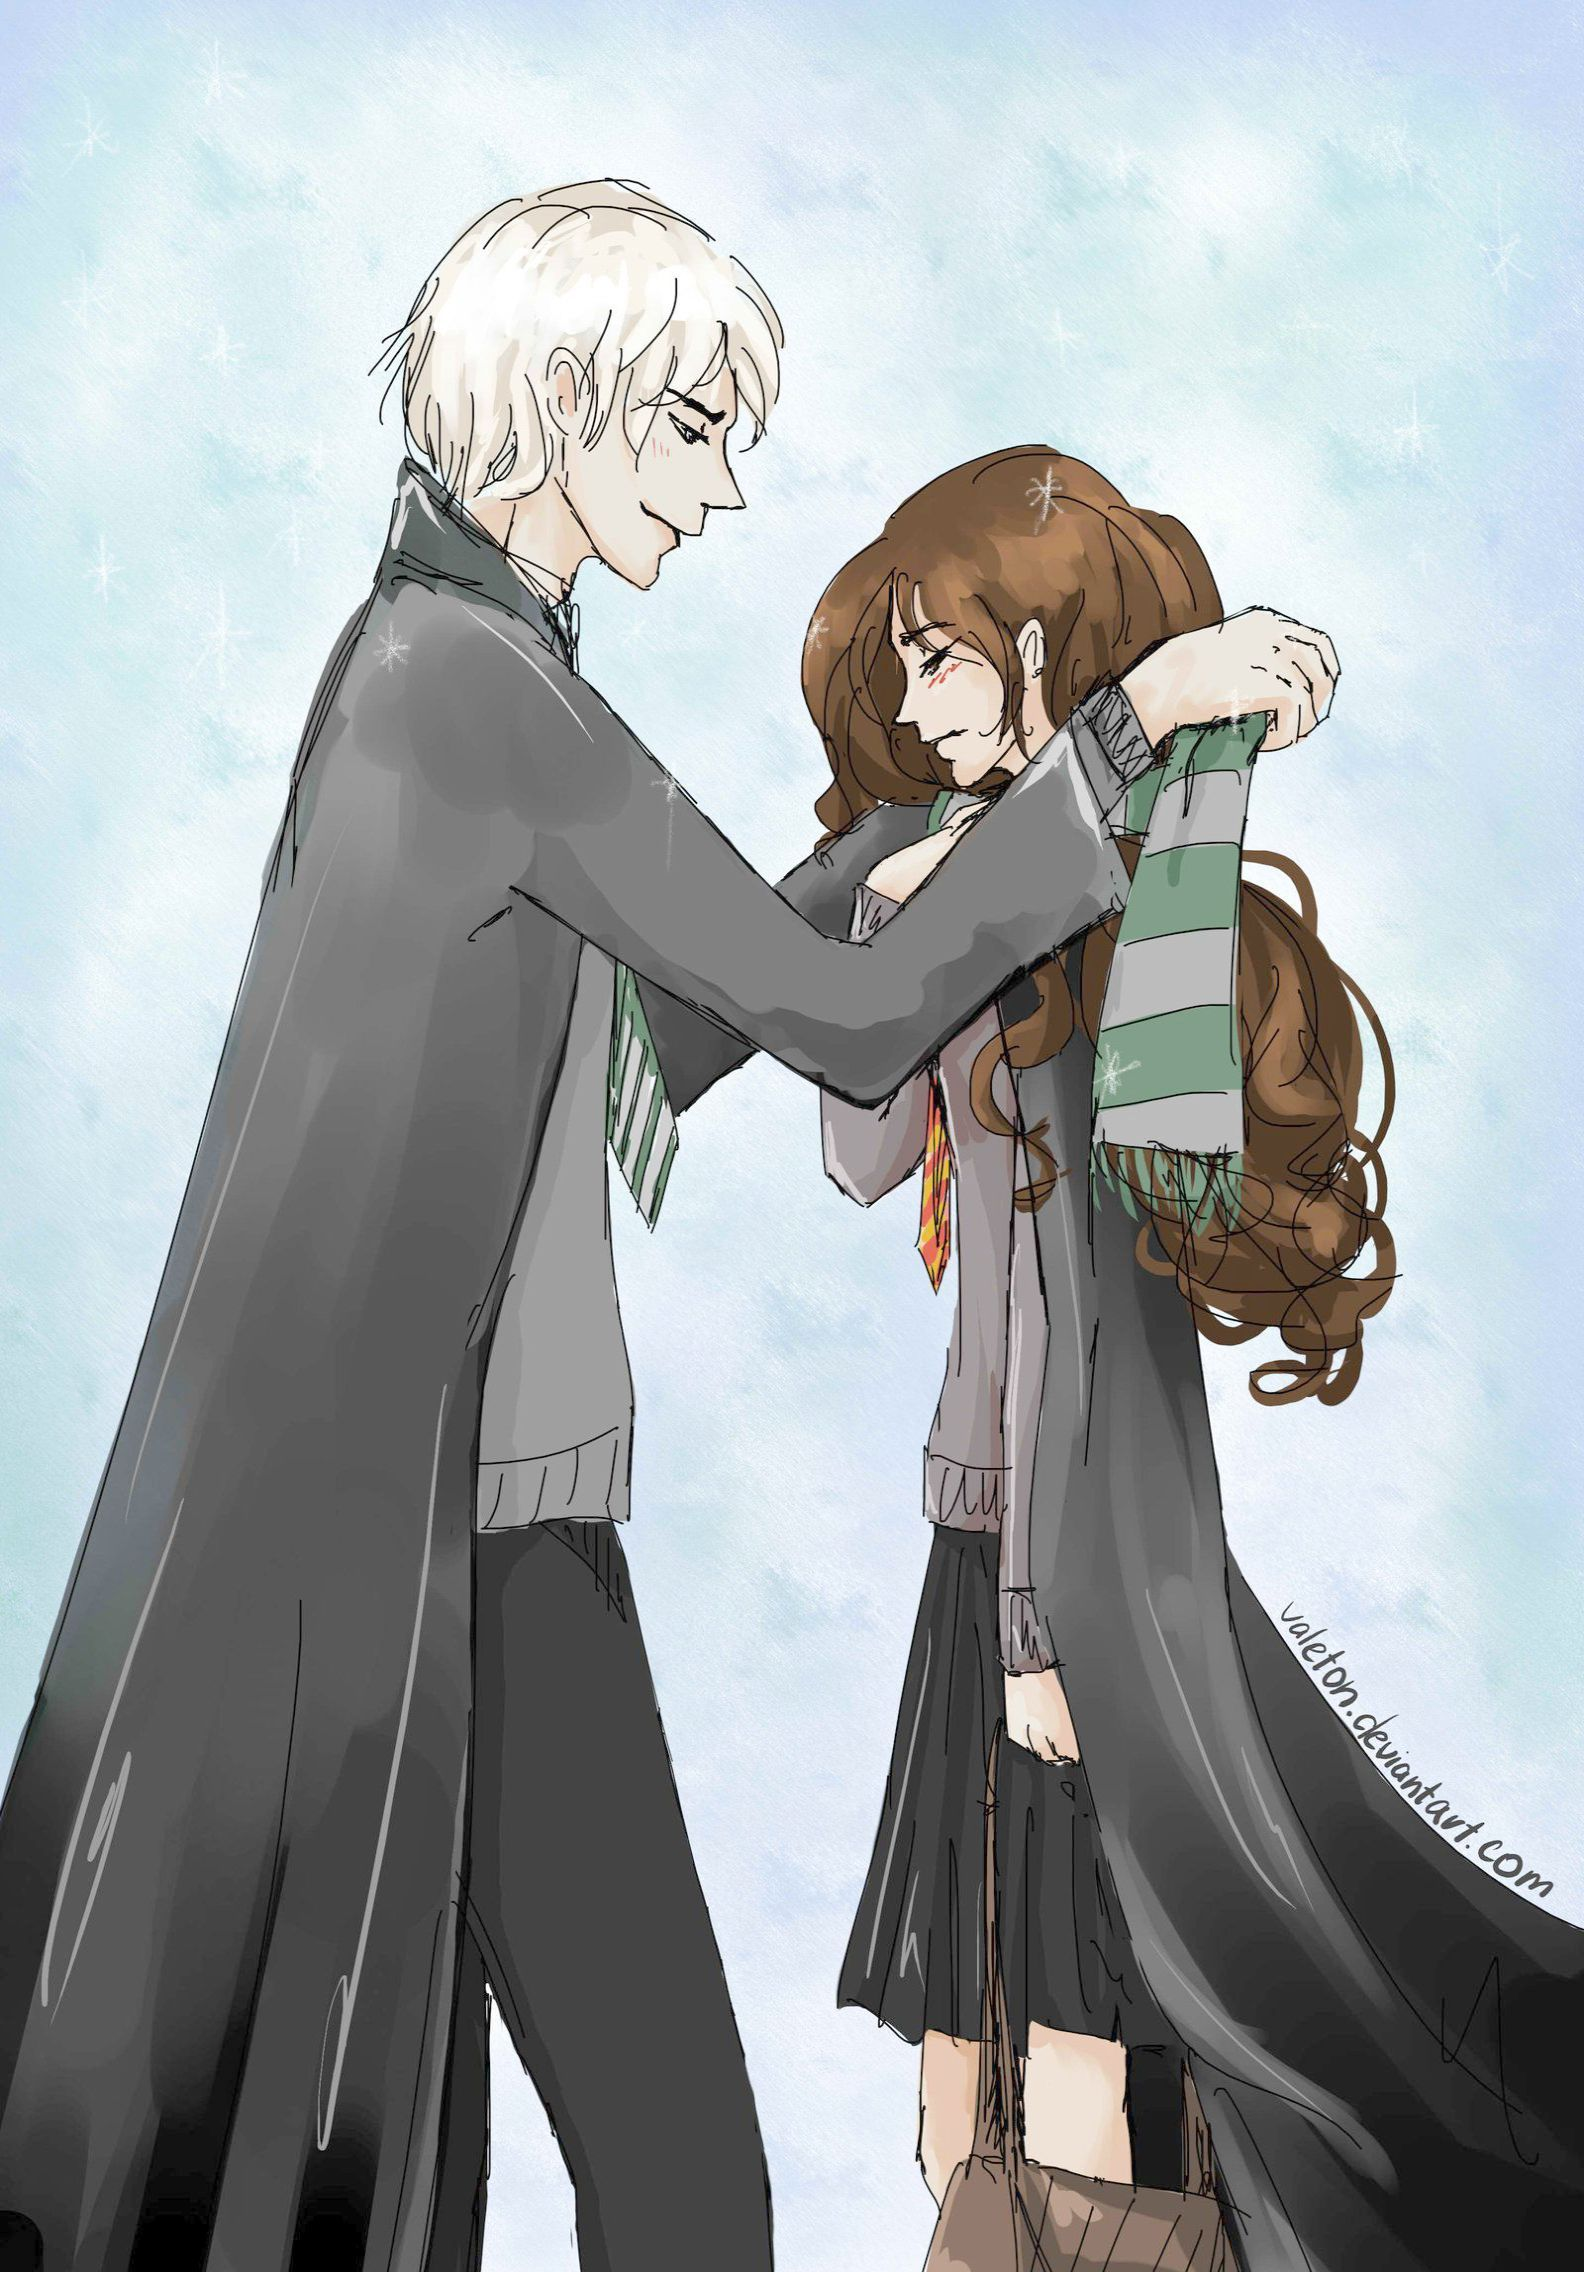 Harry Potter Movies Total Time Without Harry Potter Spells Most Powerful It Is Harry Potter Movies Under Harry Pot Dramione Dramione Fan Art Harry Potter Anime